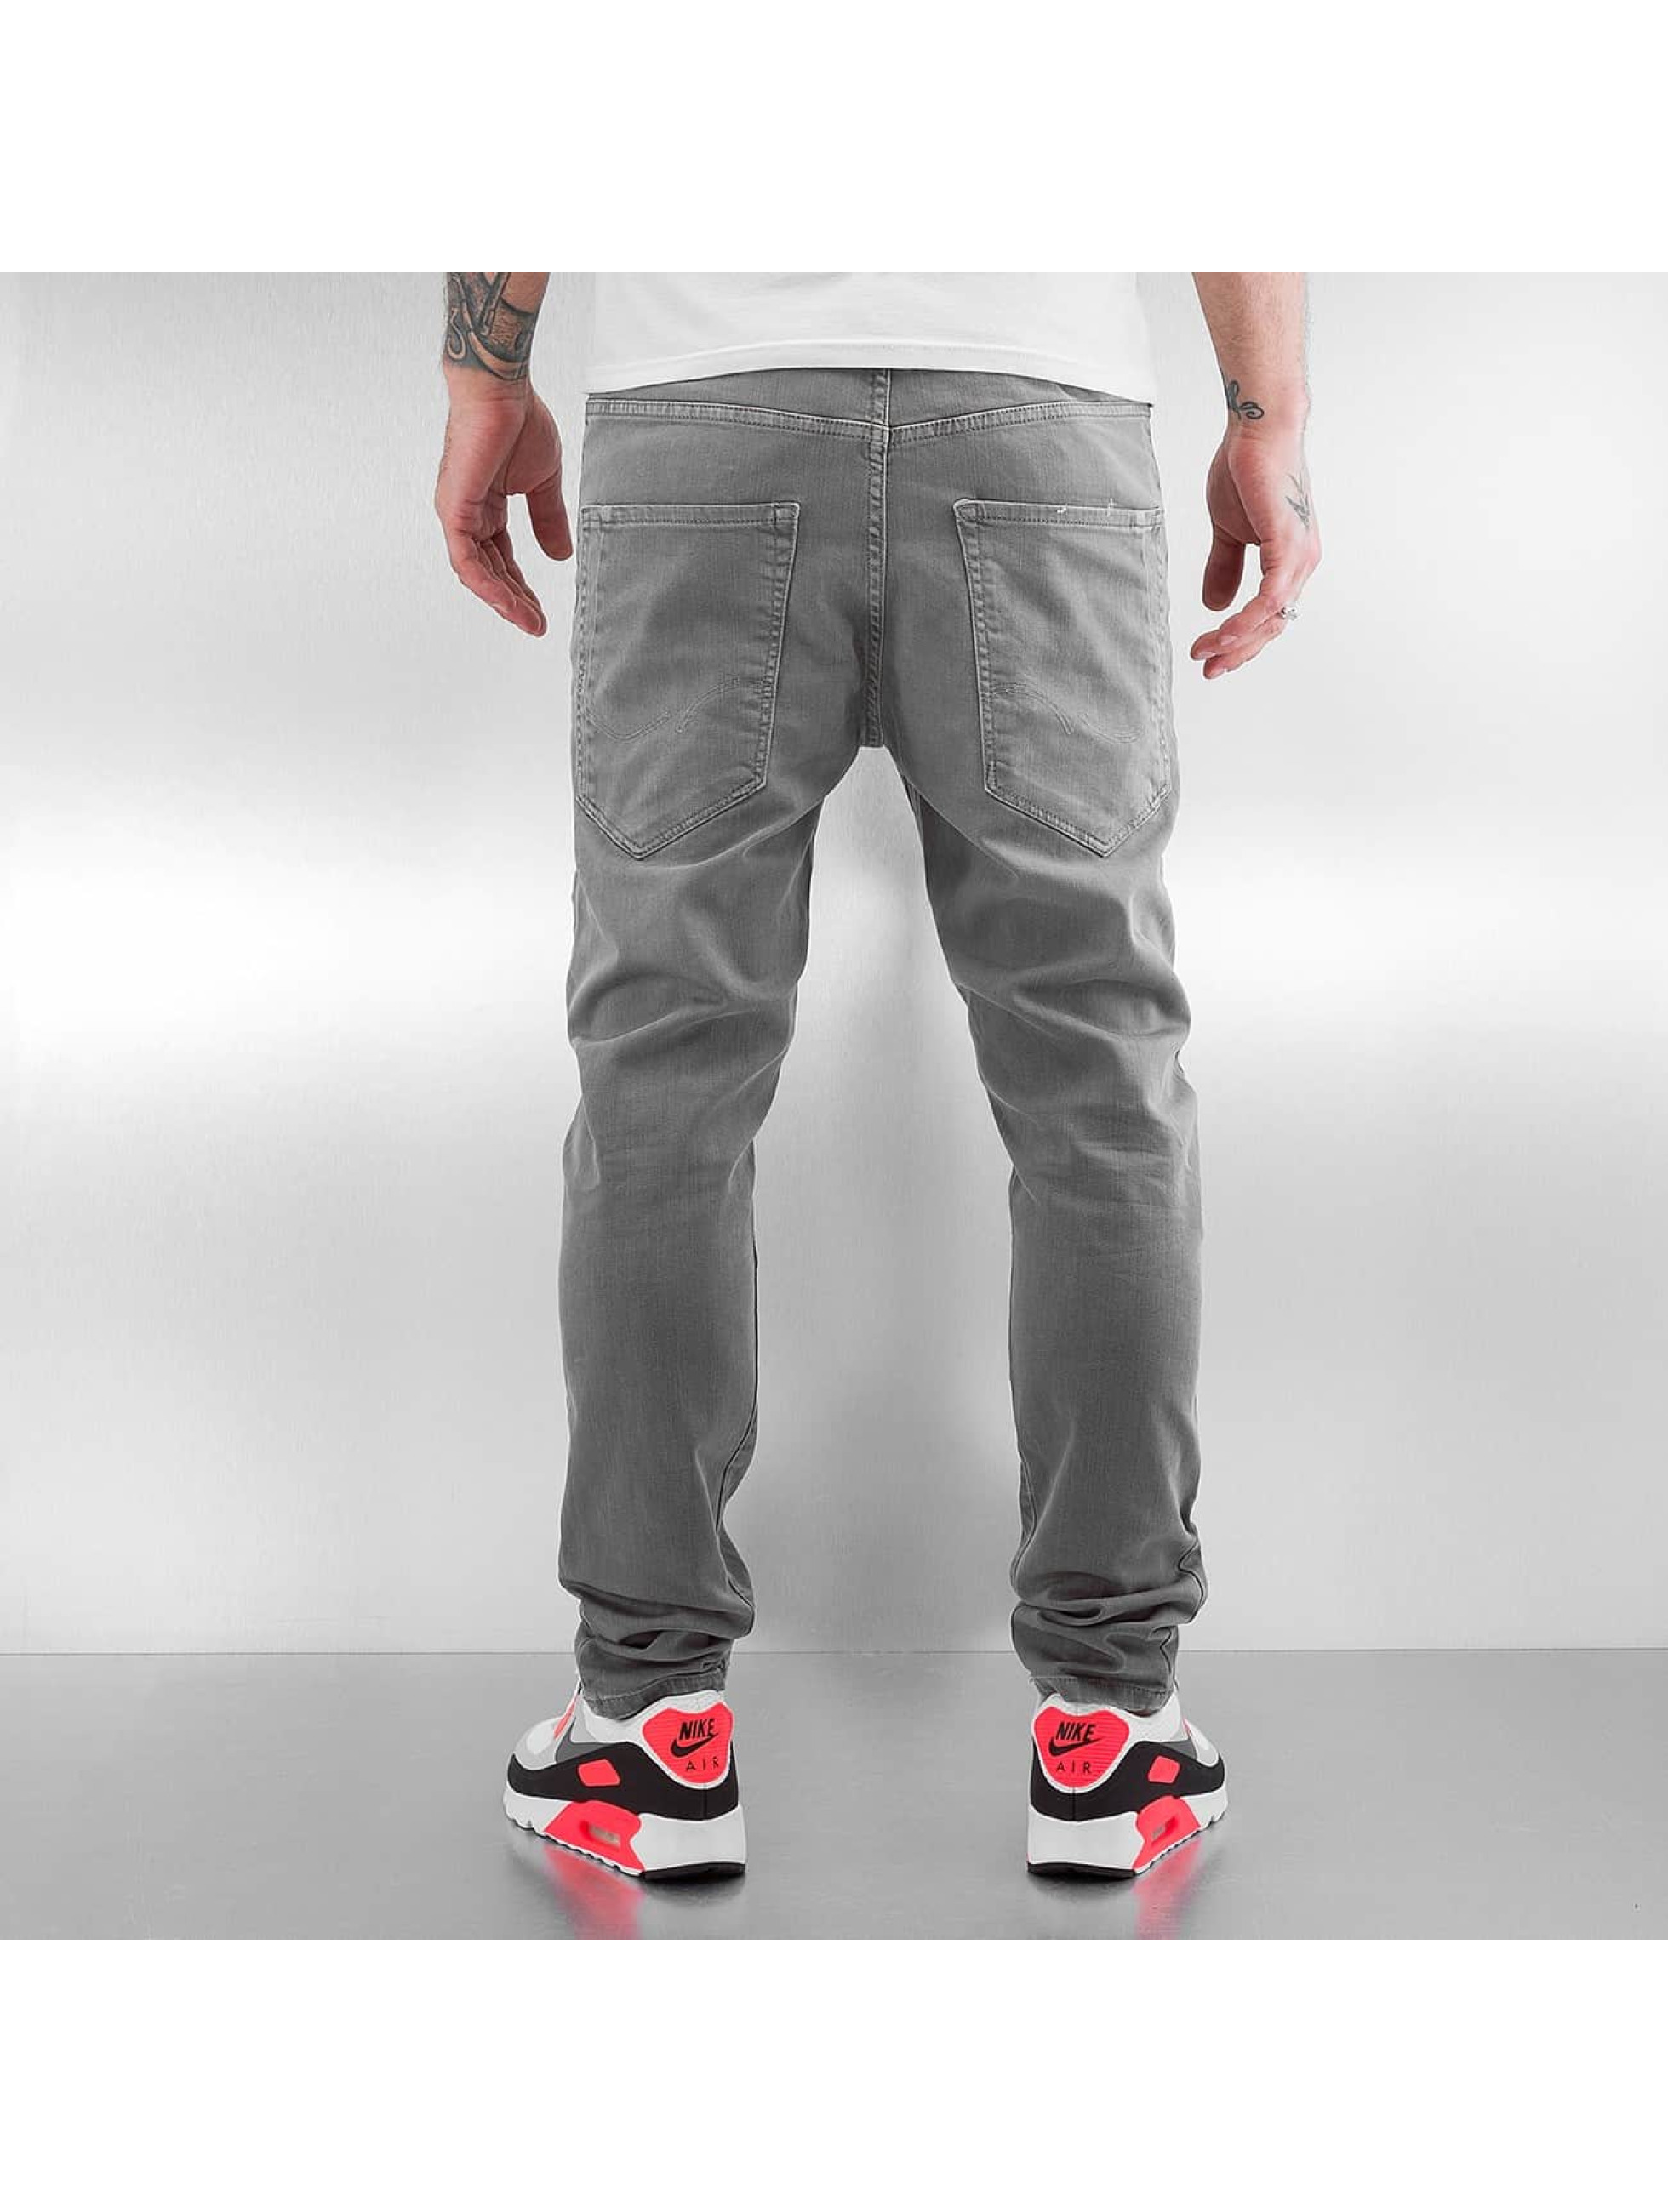 Jack & Jones Antifit jjIluke jjEcho JOS 999 grijs